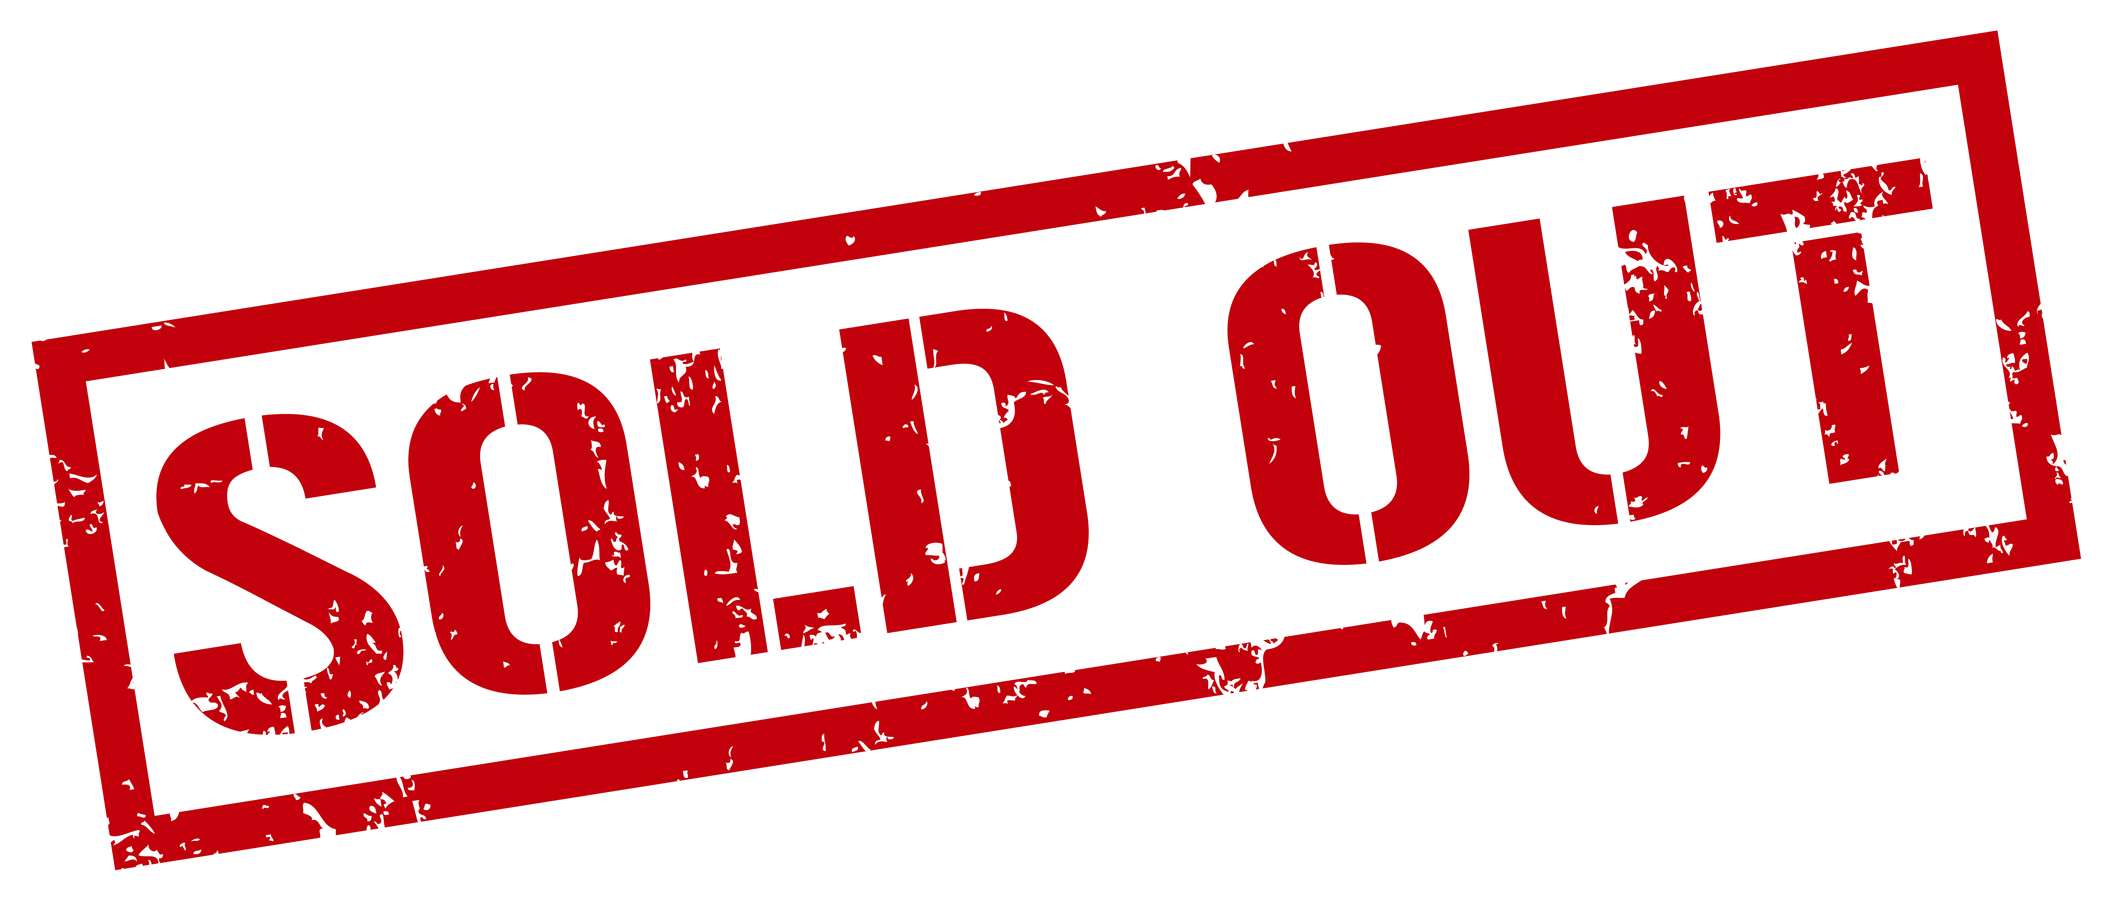 Hdpng - Sold Out, Transparent background PNG HD thumbnail